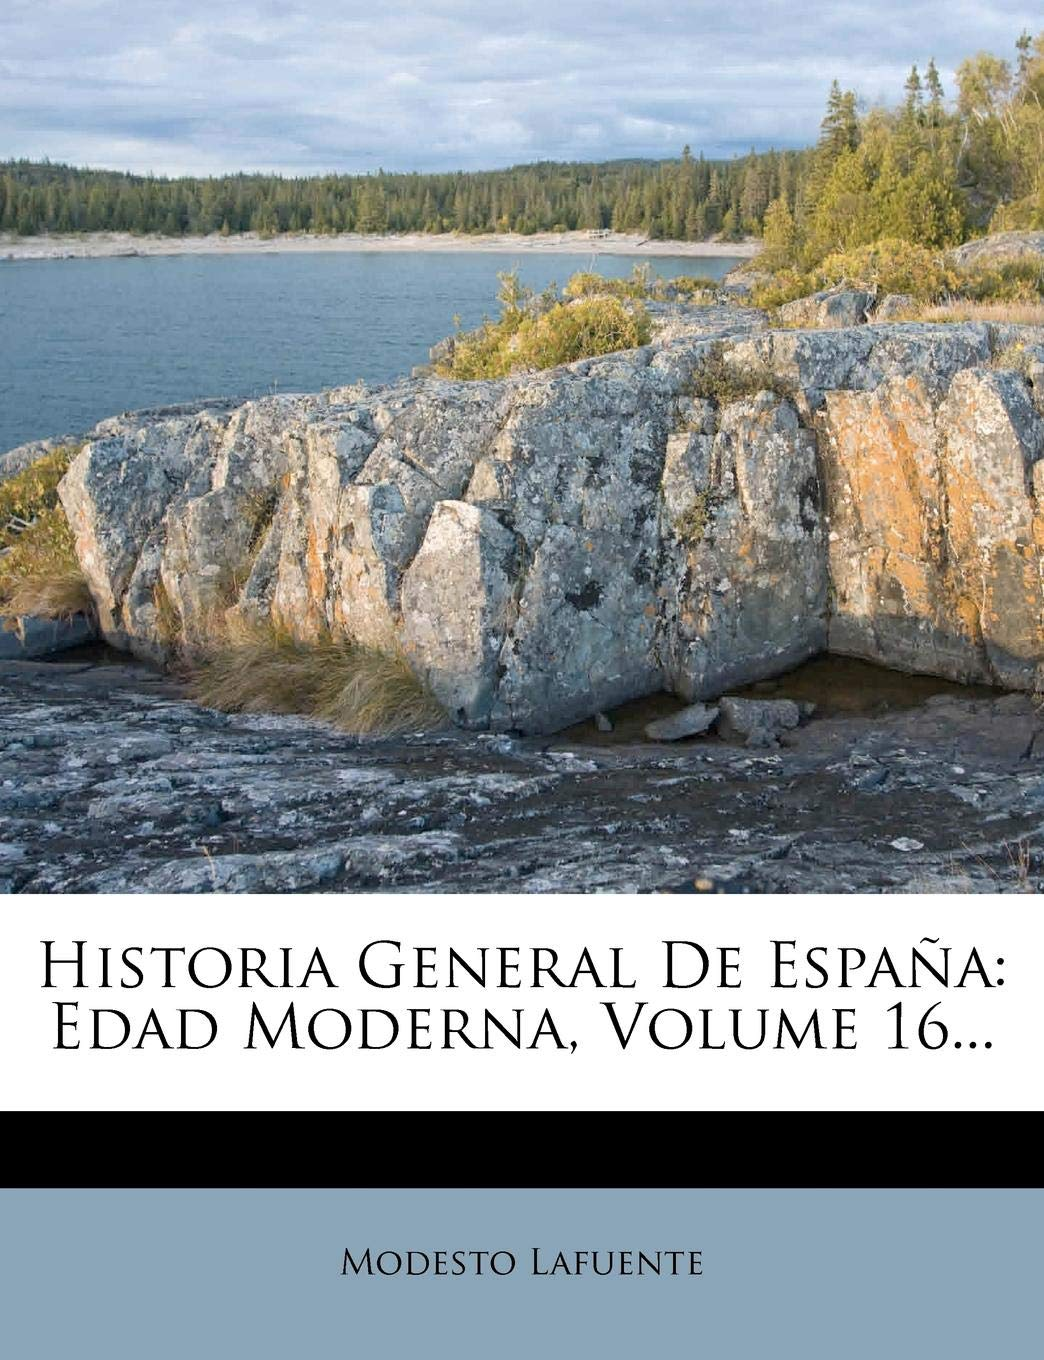 Historia General De España: Edad Moderna, Volume 16...: Amazon.es ...